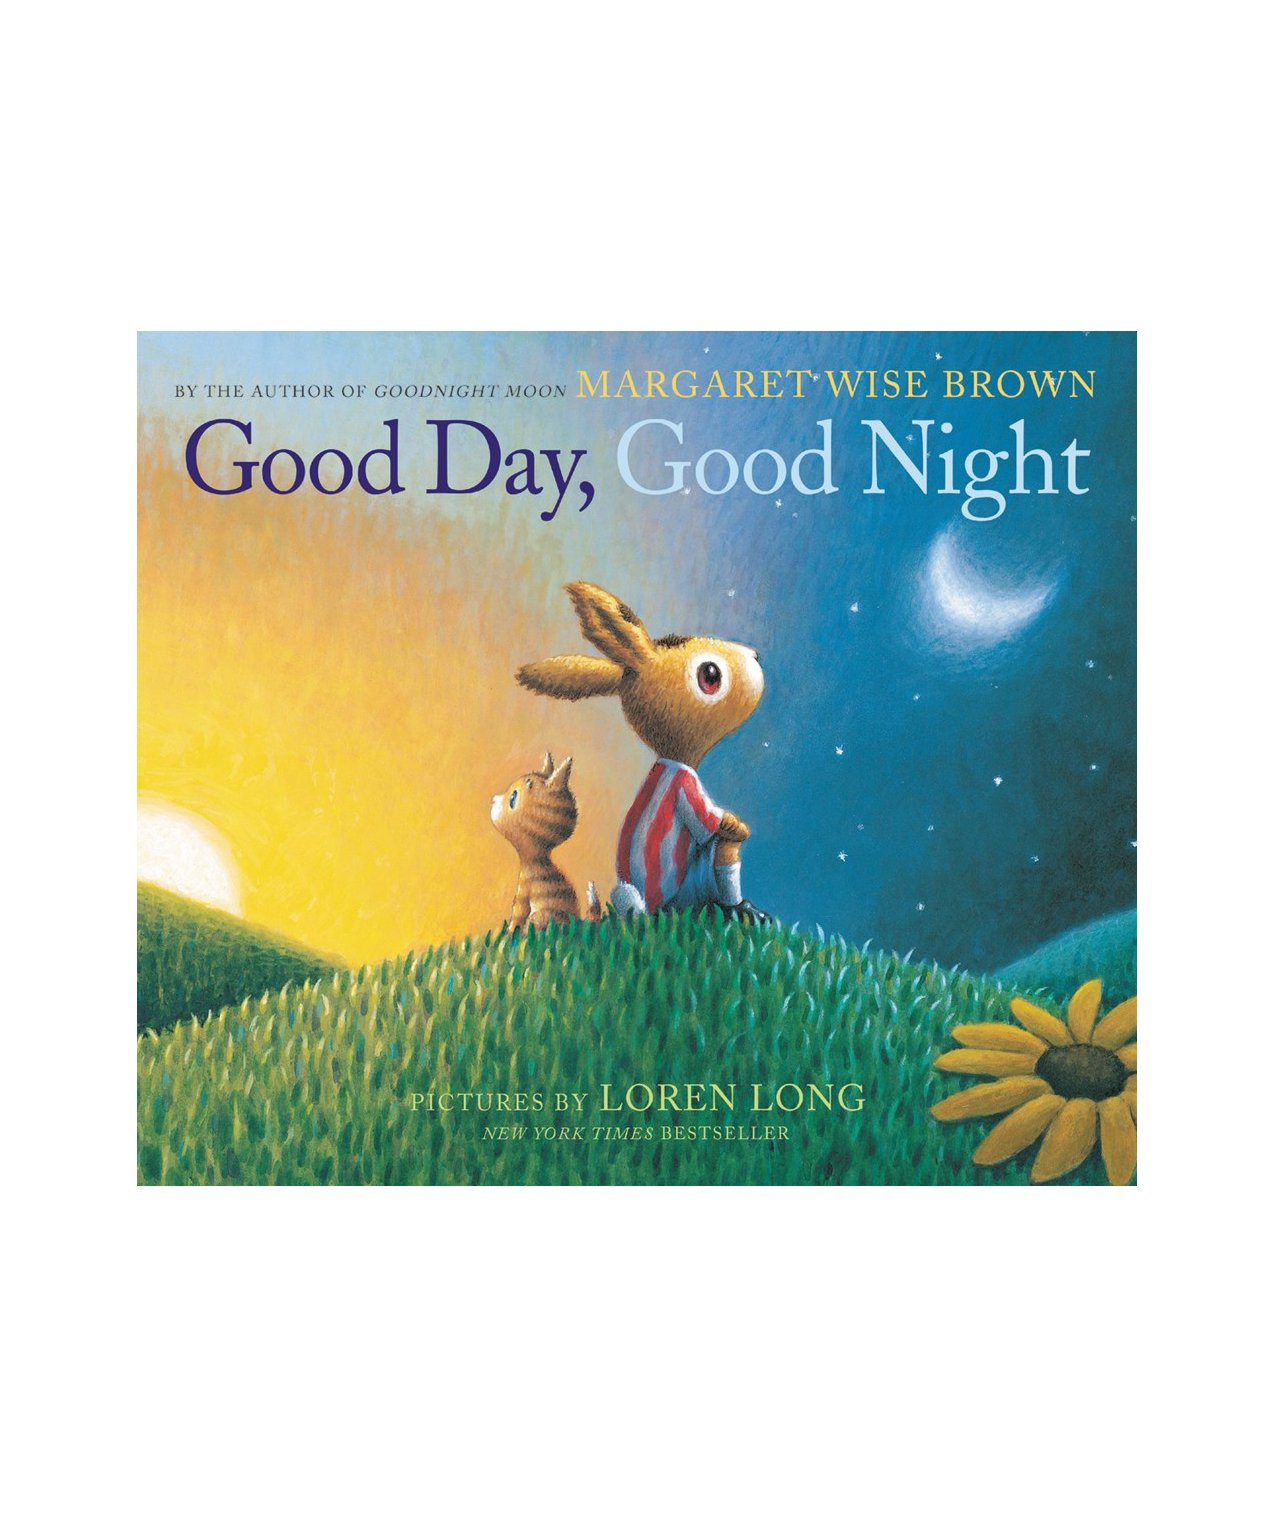 73cf0dc1c320a Memorized Goodnight Moon  Pick Up This Never-Before-Published Book ...